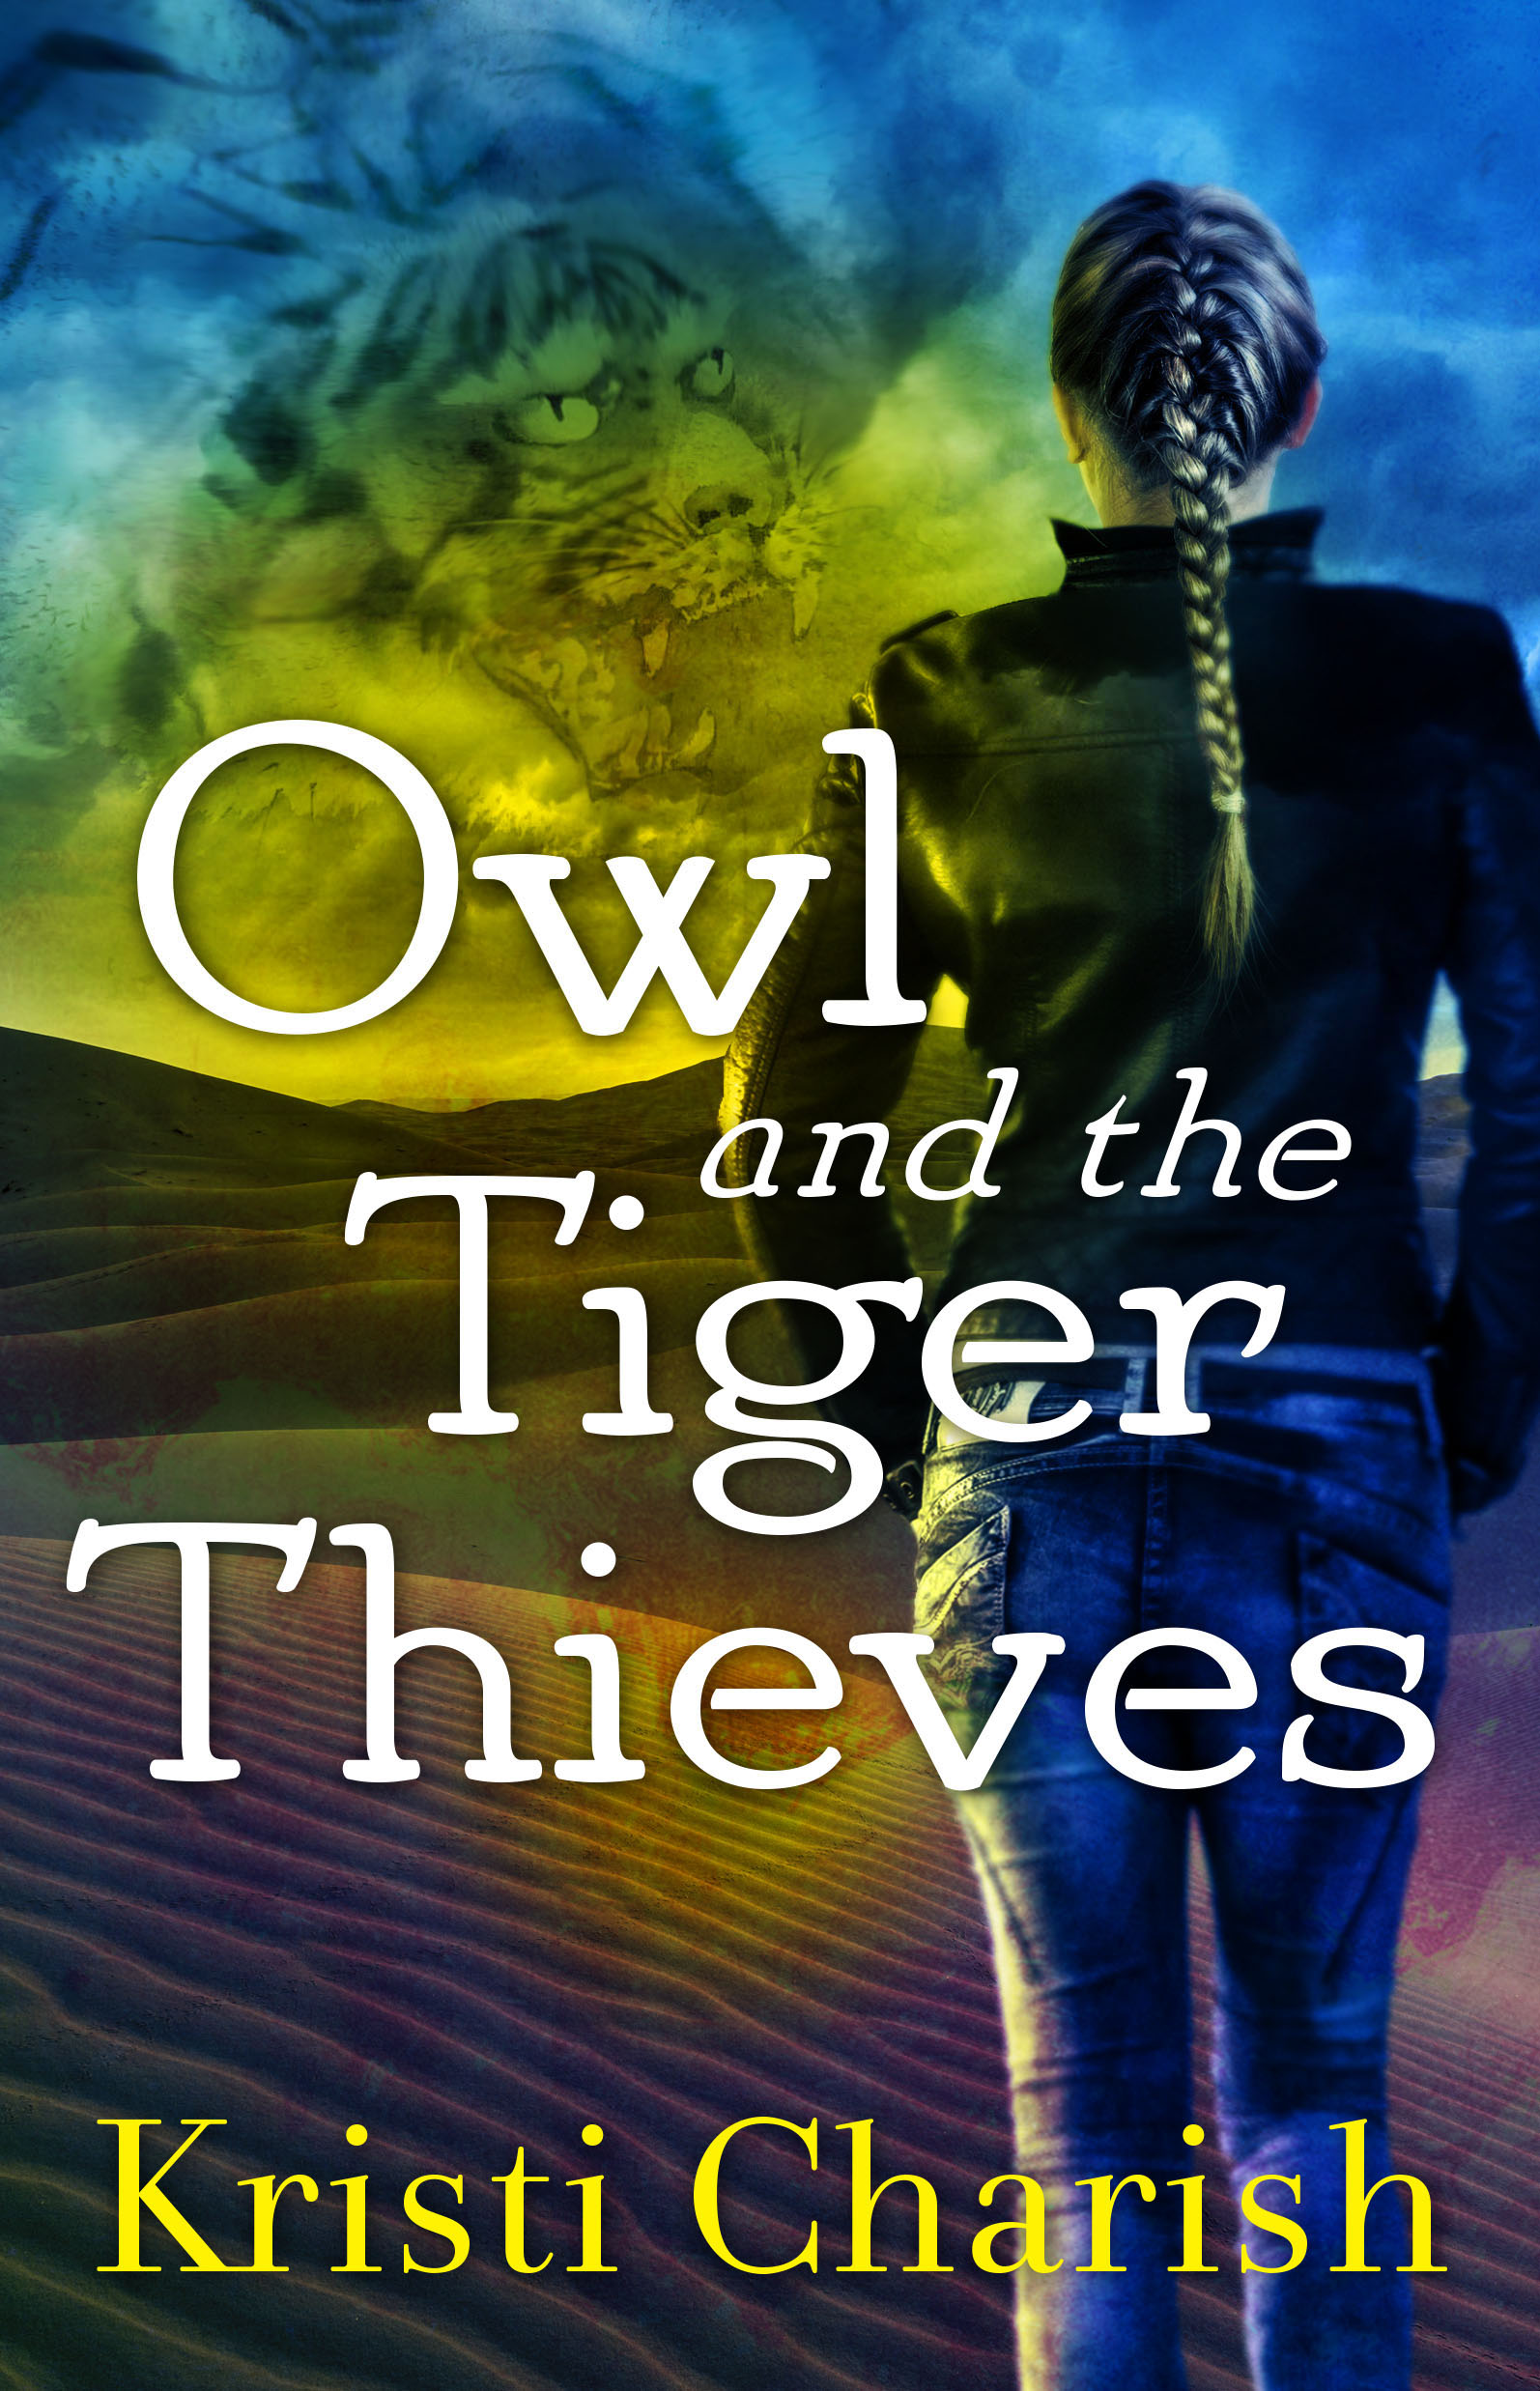 OWL AND THE TIGER THIEVES  out May 7th